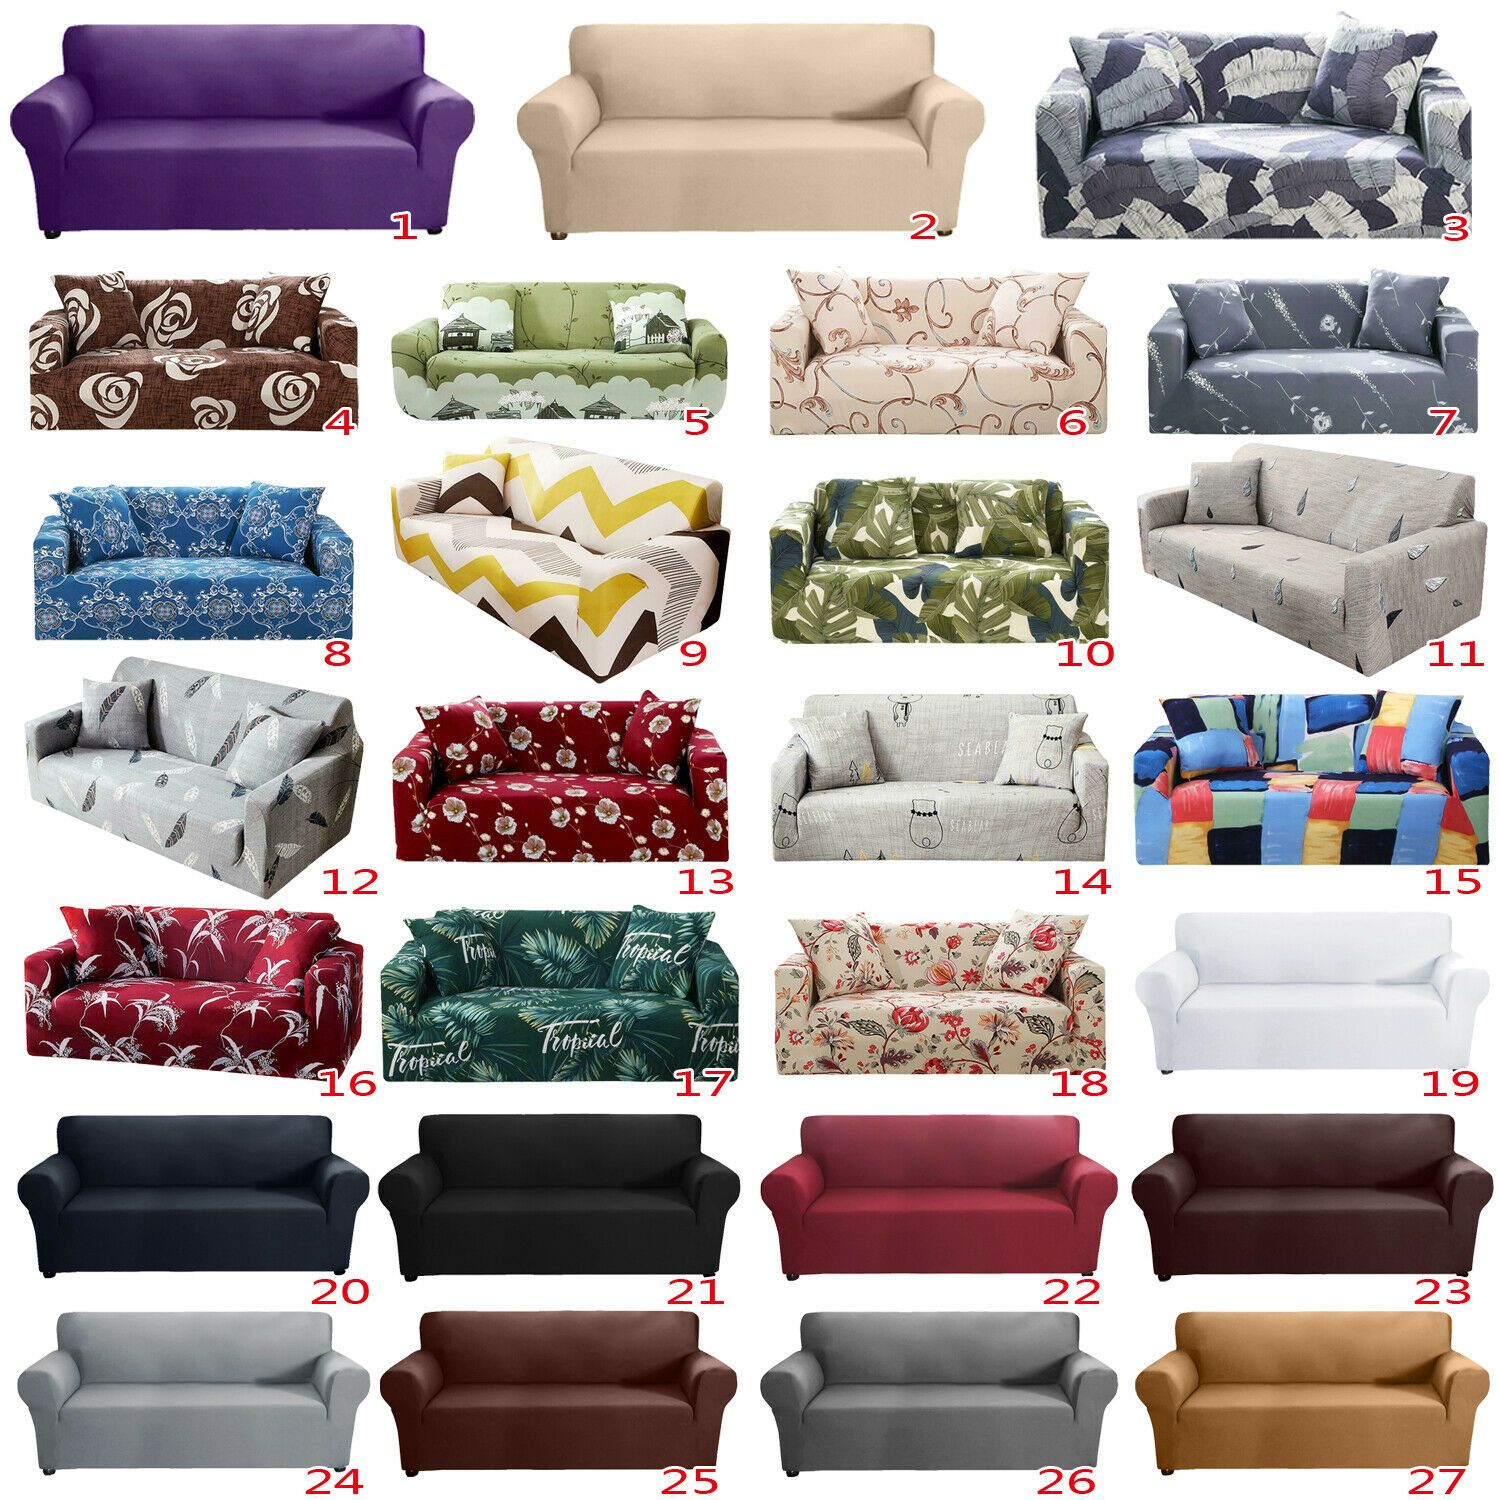 1 4 Seater Elastic Slipcover Sofa Covers Stretch Couch Cover Furniture Protector Sofa Slipcover Ideas Of Sofa